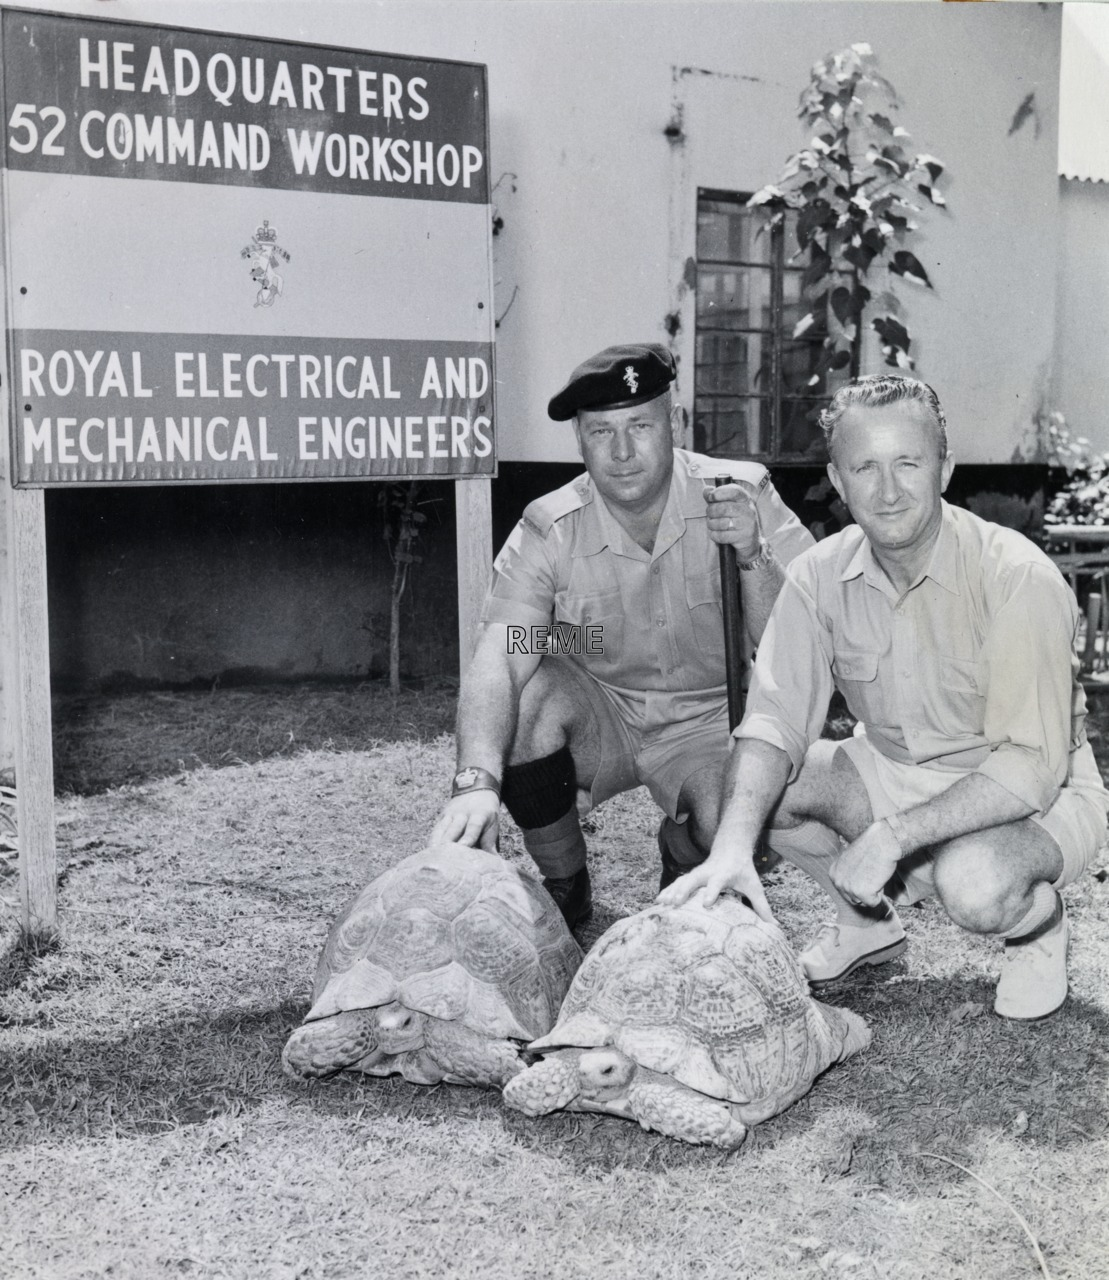 52 Command Workshop REME, Aden: individuals with tortoises in front of headquarters.